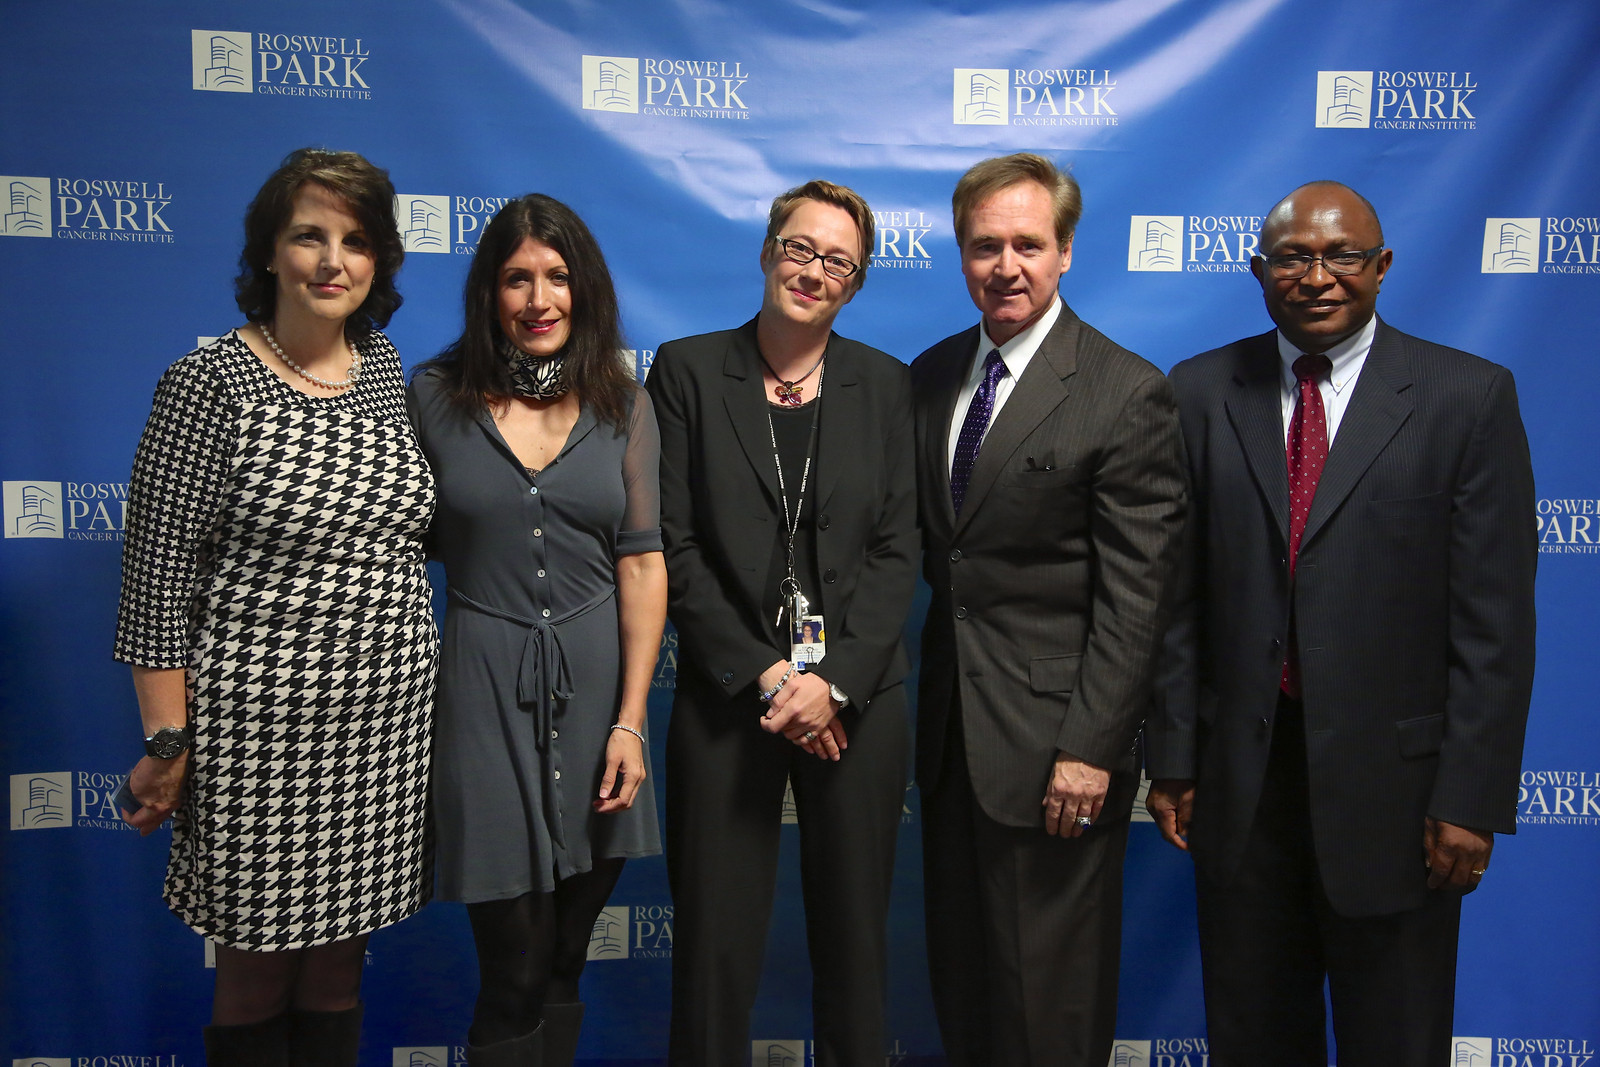 Ovarian cancer survivor, Kathleen Maxian attends the SPORE Press Conference with Lara Sucheston, PhD, Kirsten B. Moysich, PhD, MS, U.S. Congressman Brian Higgins and Kunle Odunsi, MD, PhD, FRCOG, FACOG